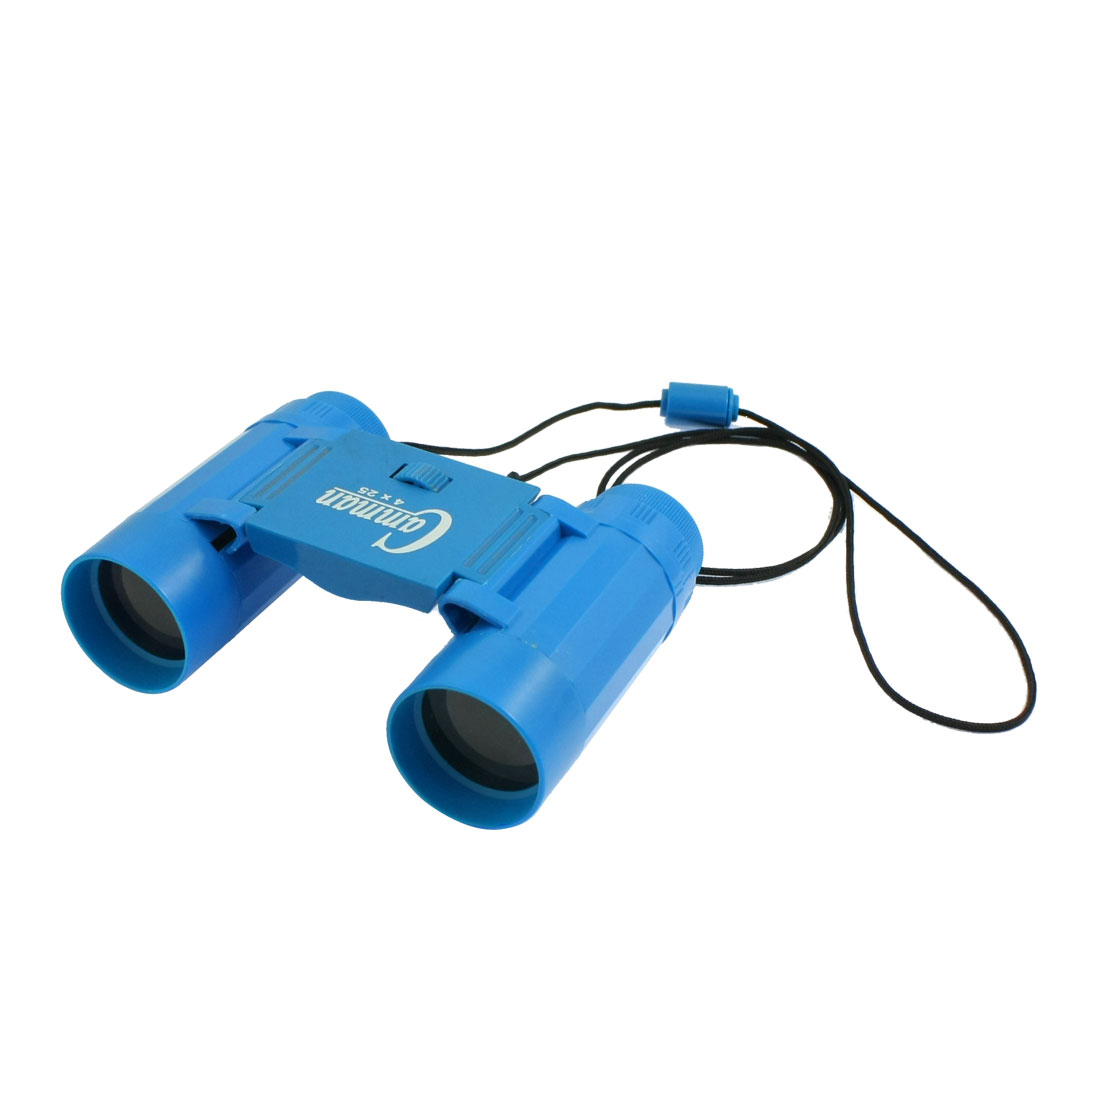 Child Plastic 25mm x 2.5X Foldable Binoculars Telescope Toy Blue